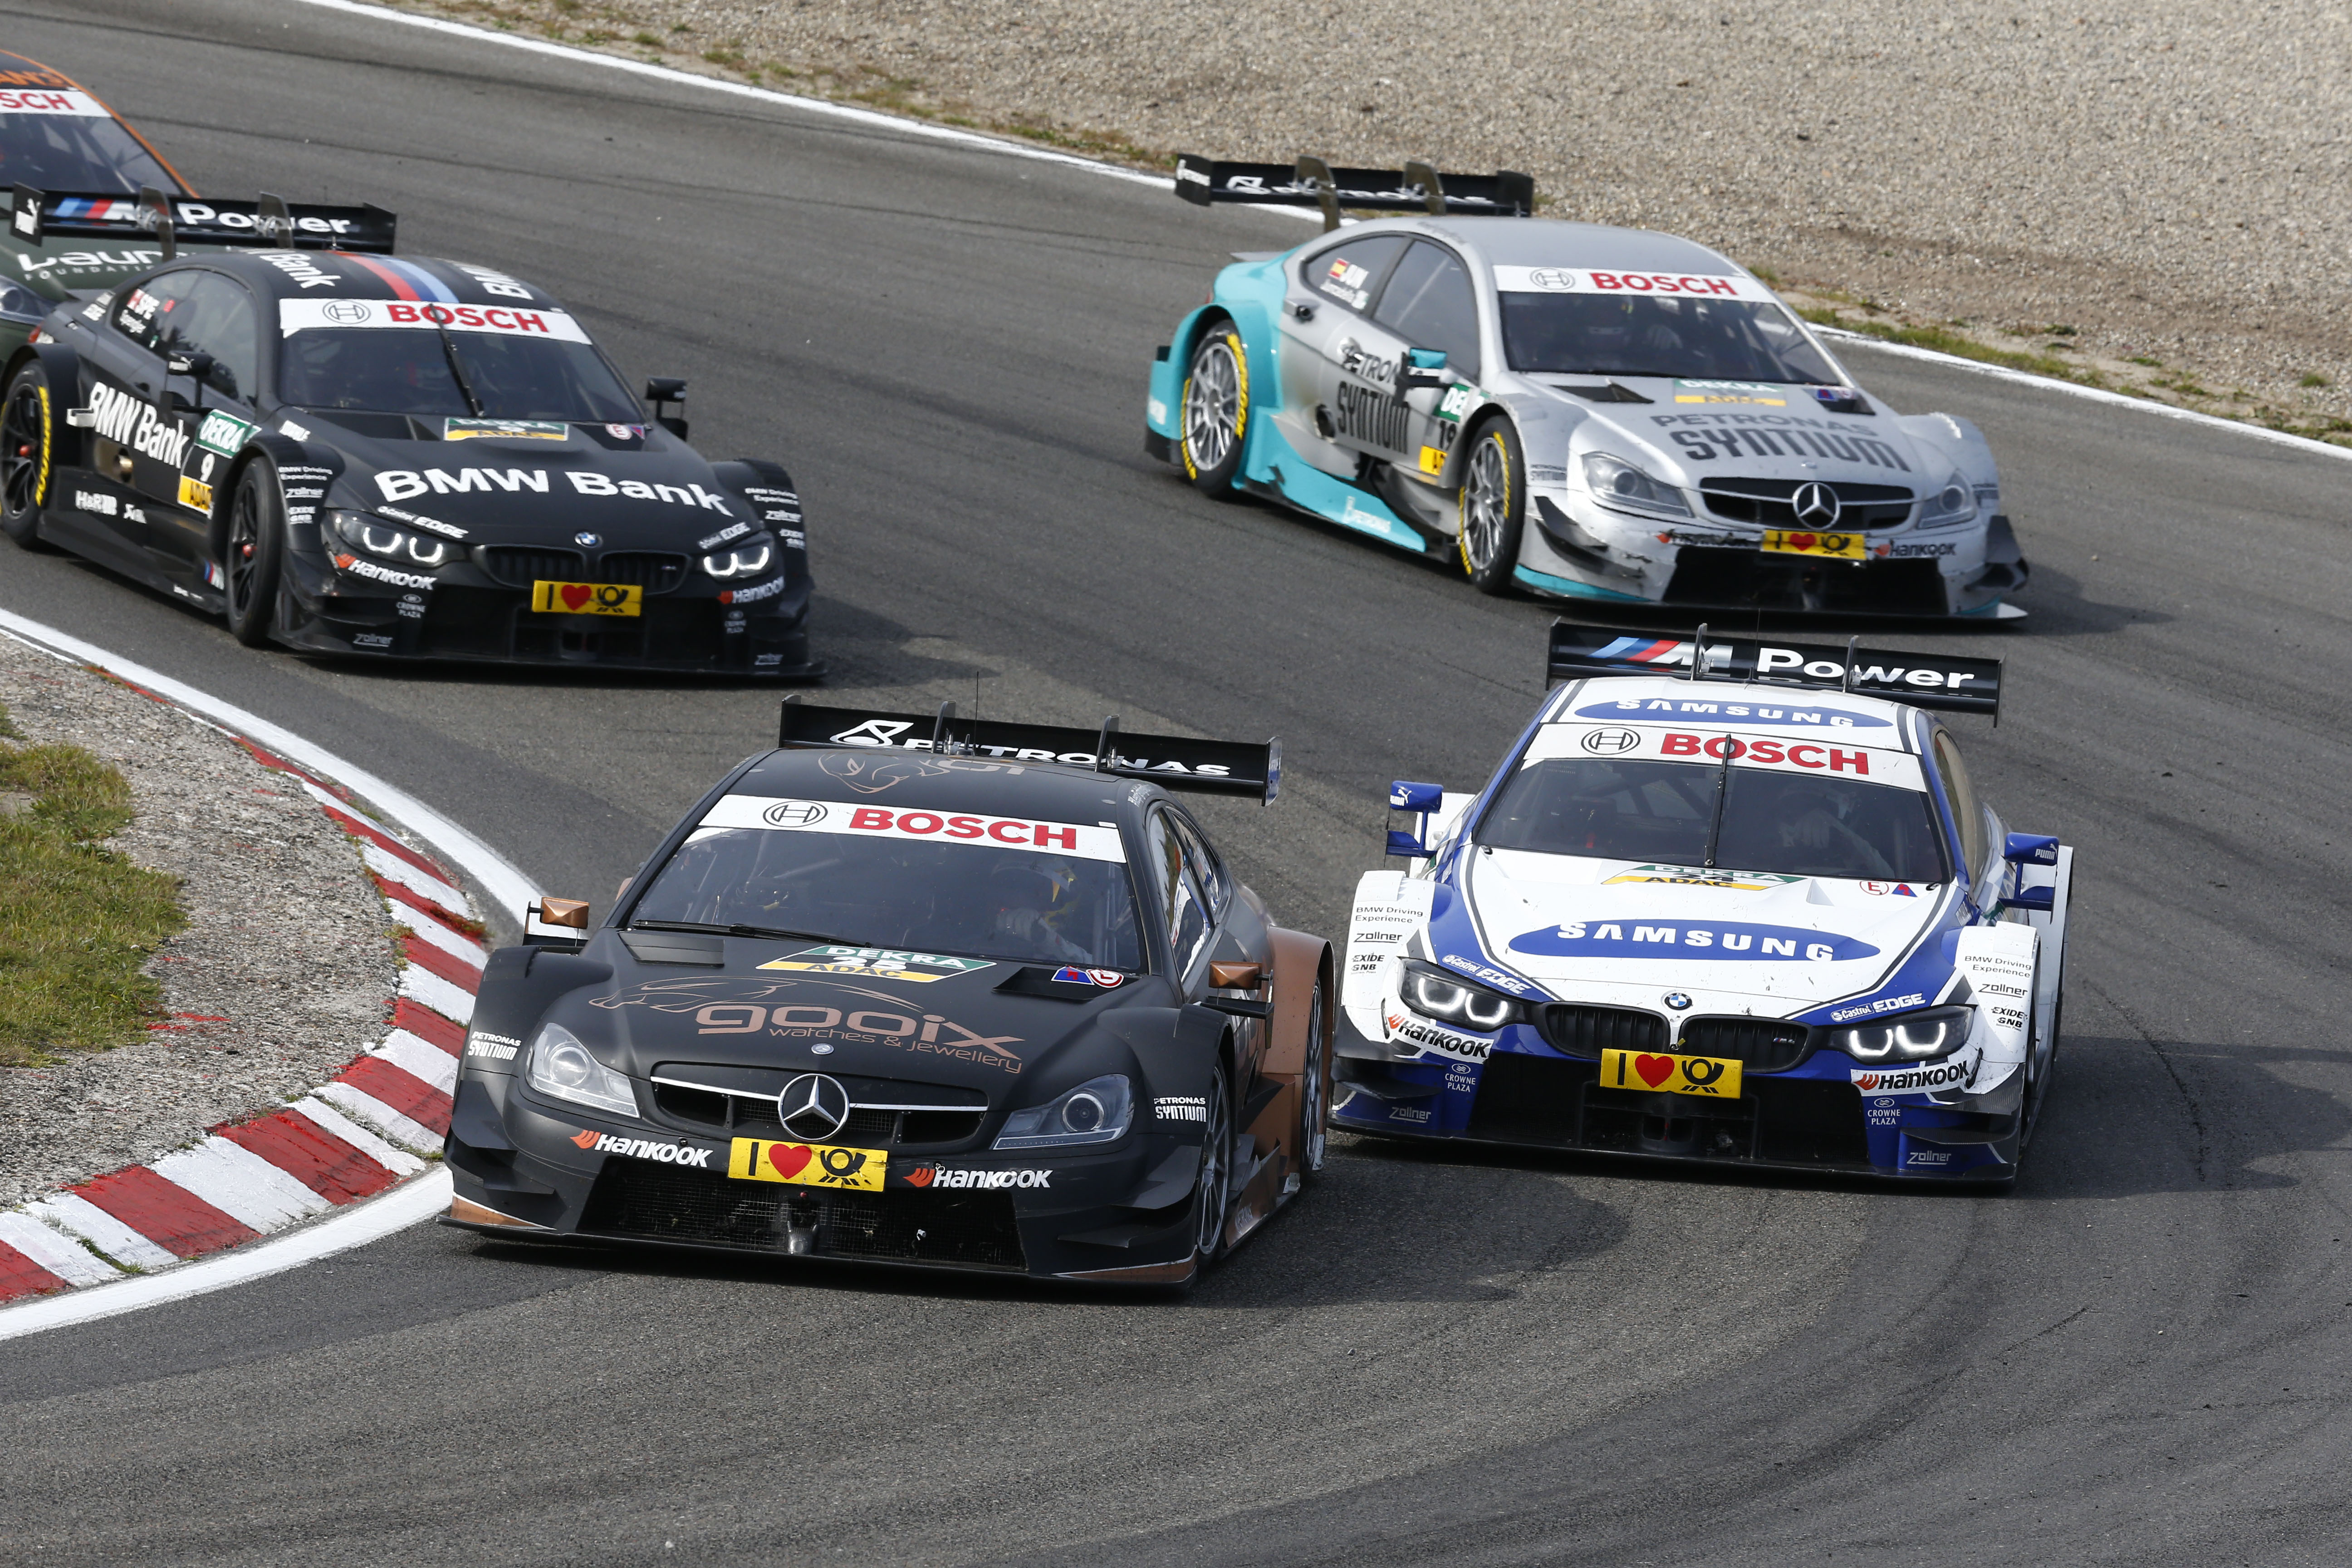 DTM: Hamilton, Coulthard & Alesi at finale in Hockenheim